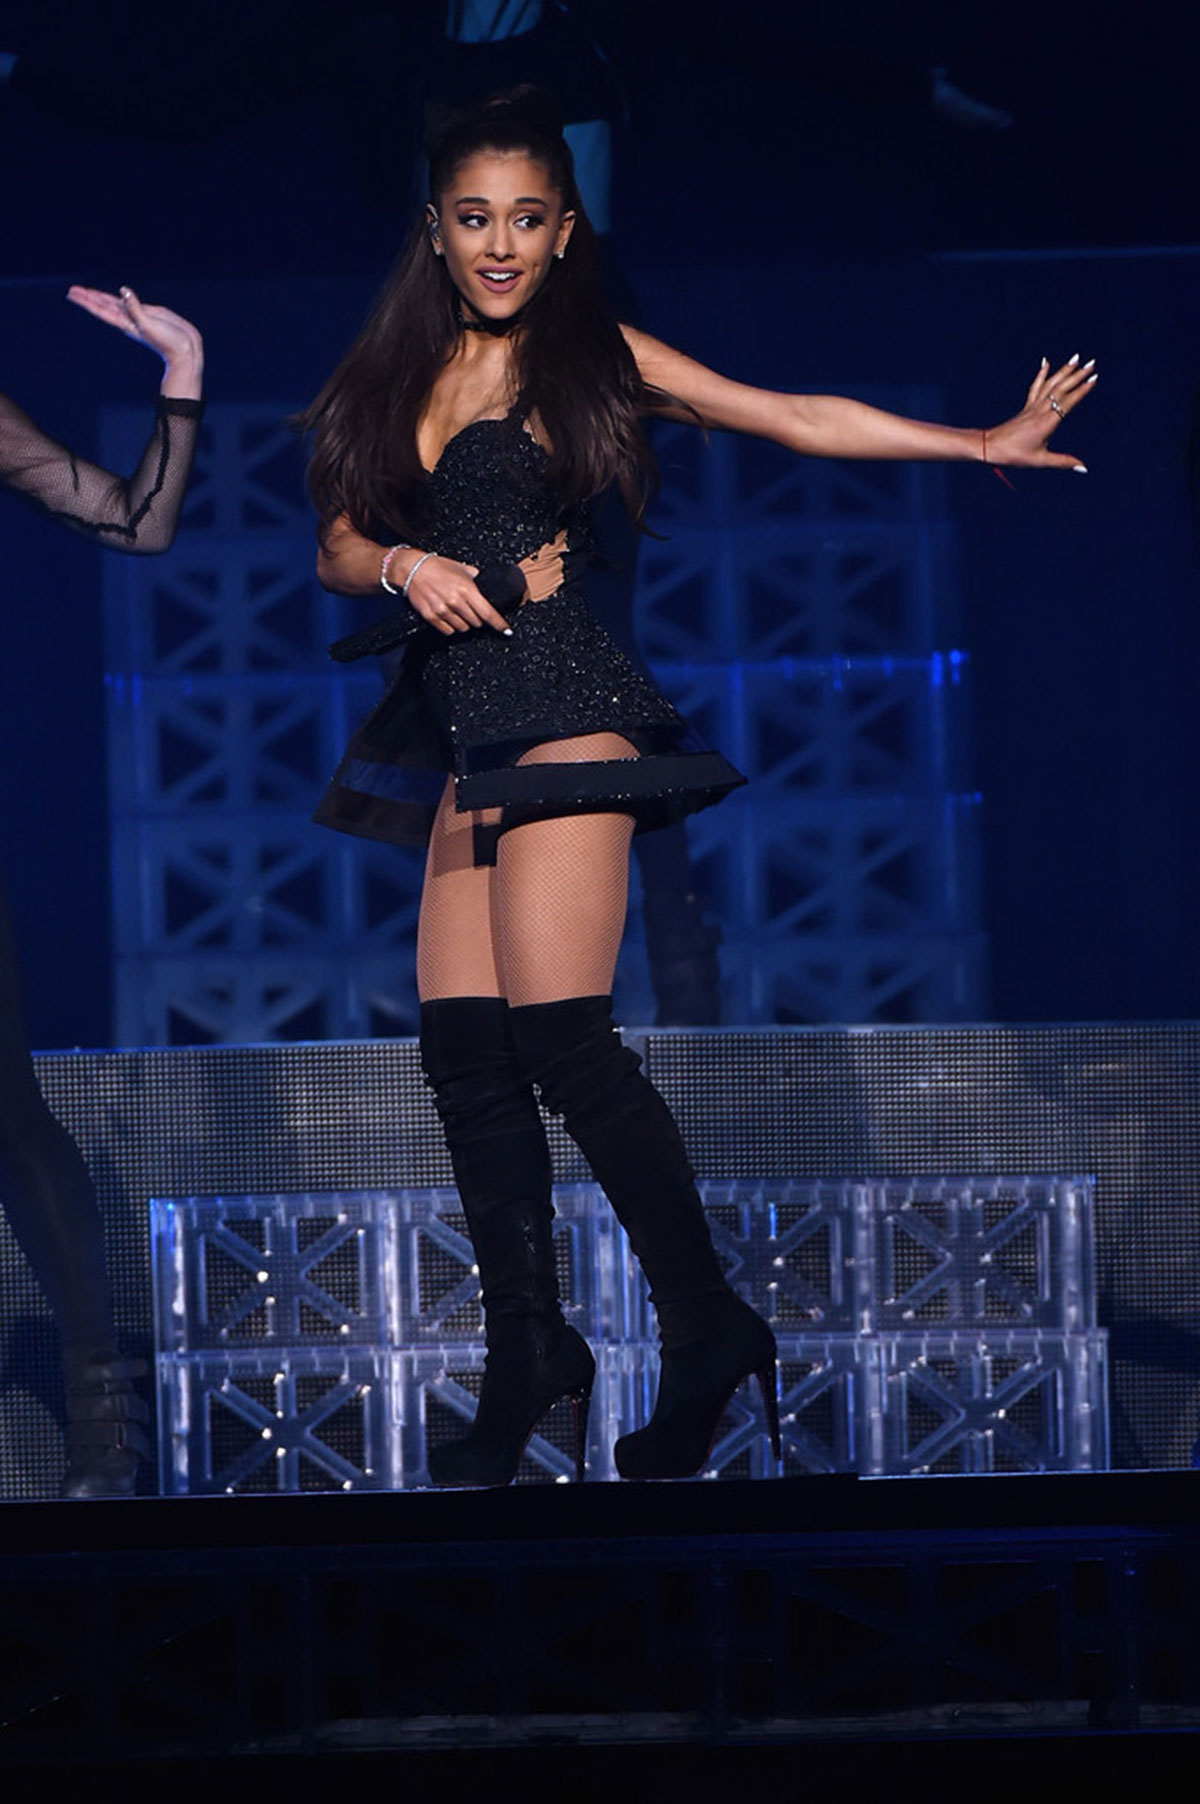 Ariana grande performs at madison square garden in new - Ariana grande concert madison square garden ...